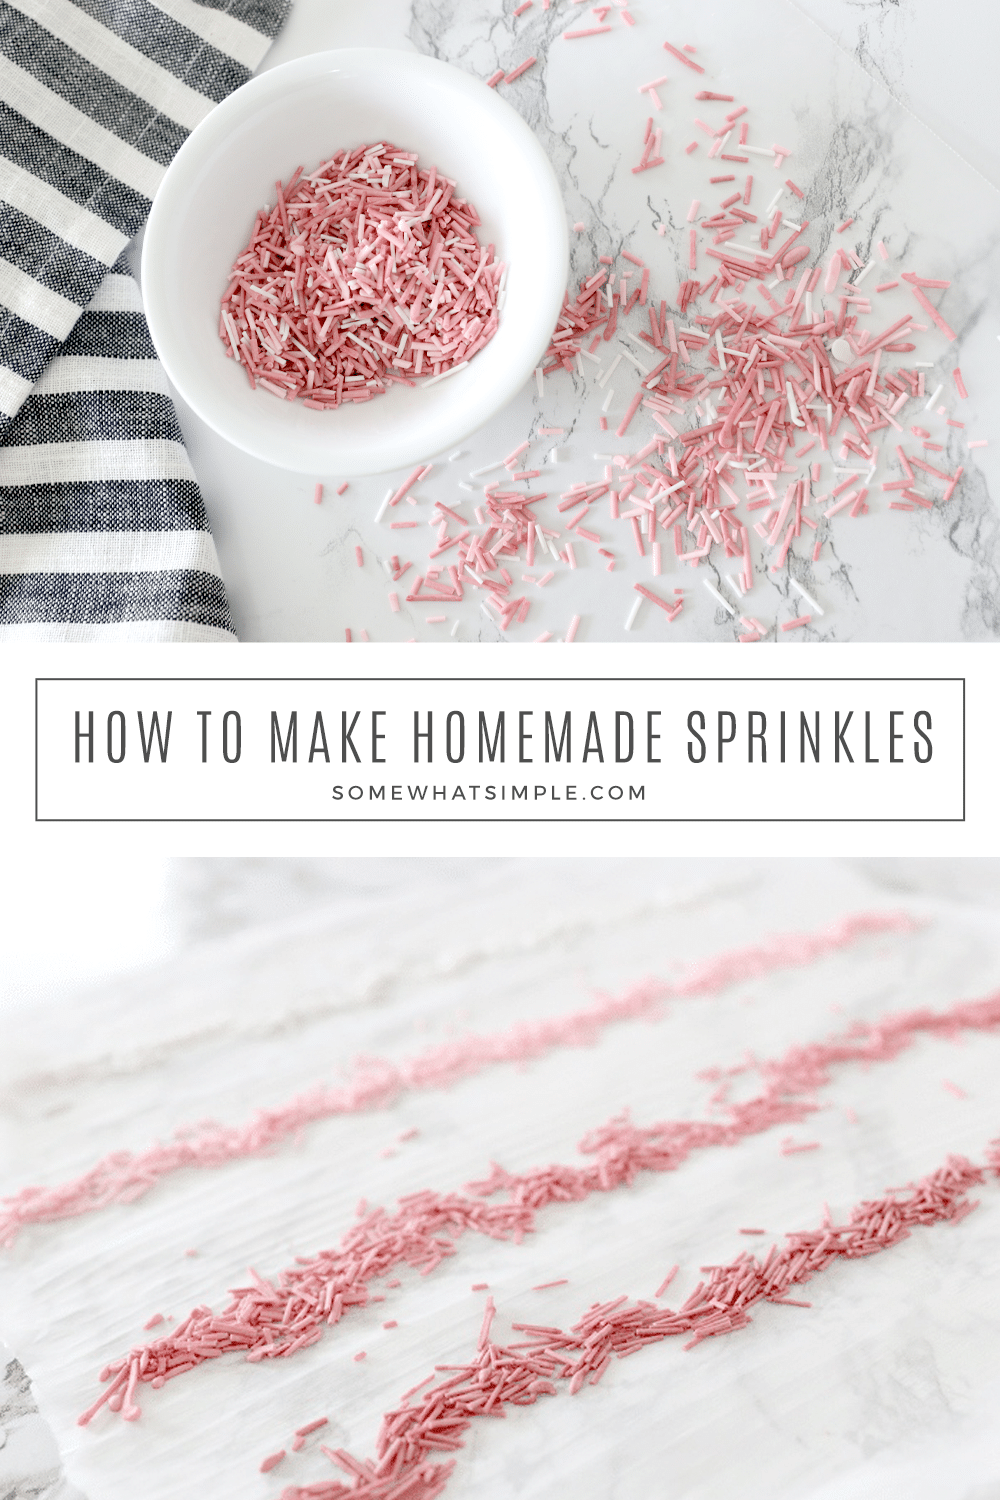 Learn how to make homemade sprinkles for all your baked goods with this tasty recipe and simple tutorial! via @somewhatsimple